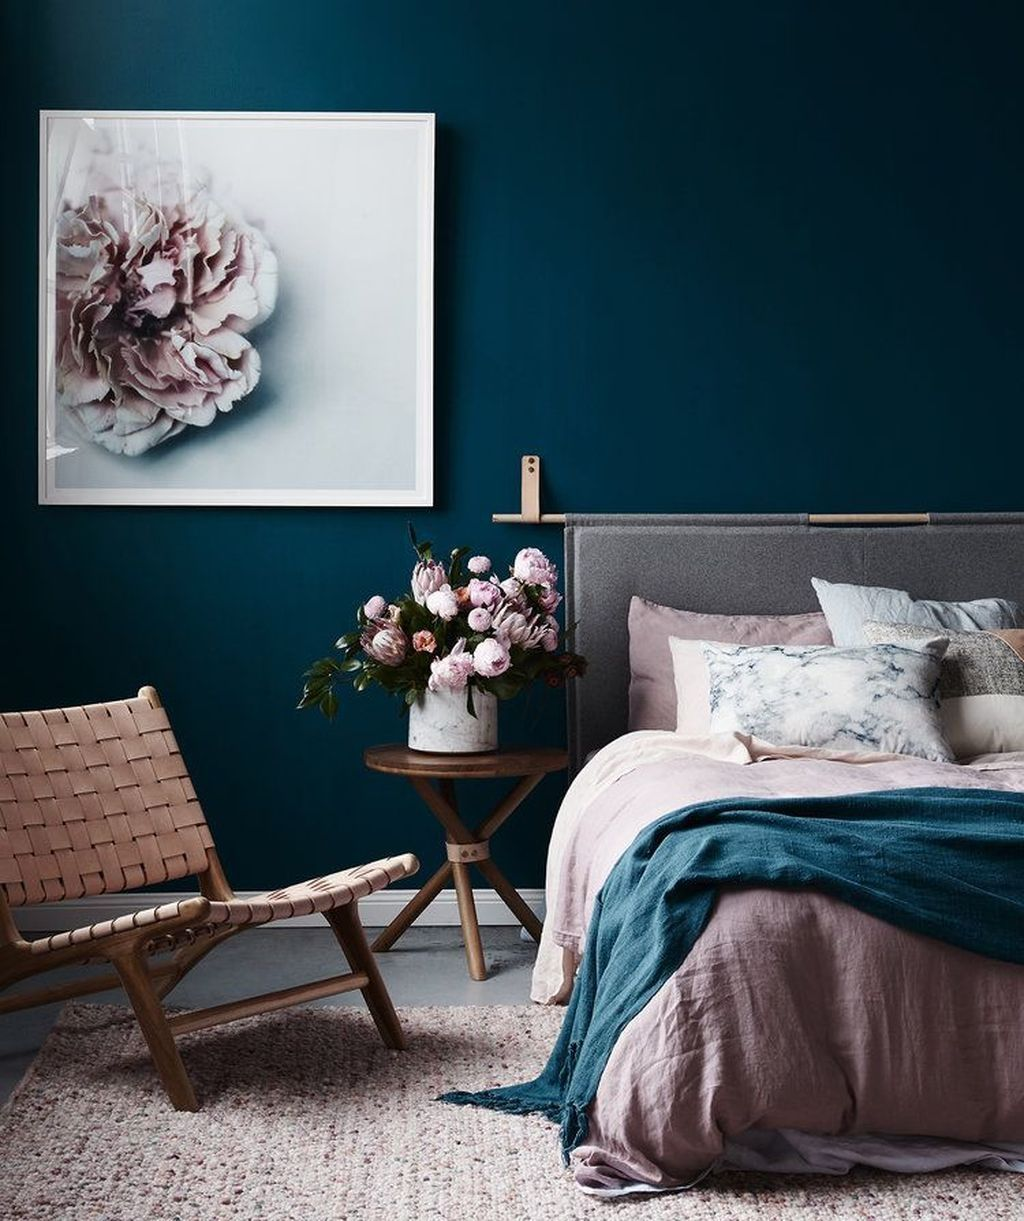 44 lovely and cozy bedroom with romantic decor ideas best for rh pinterest com